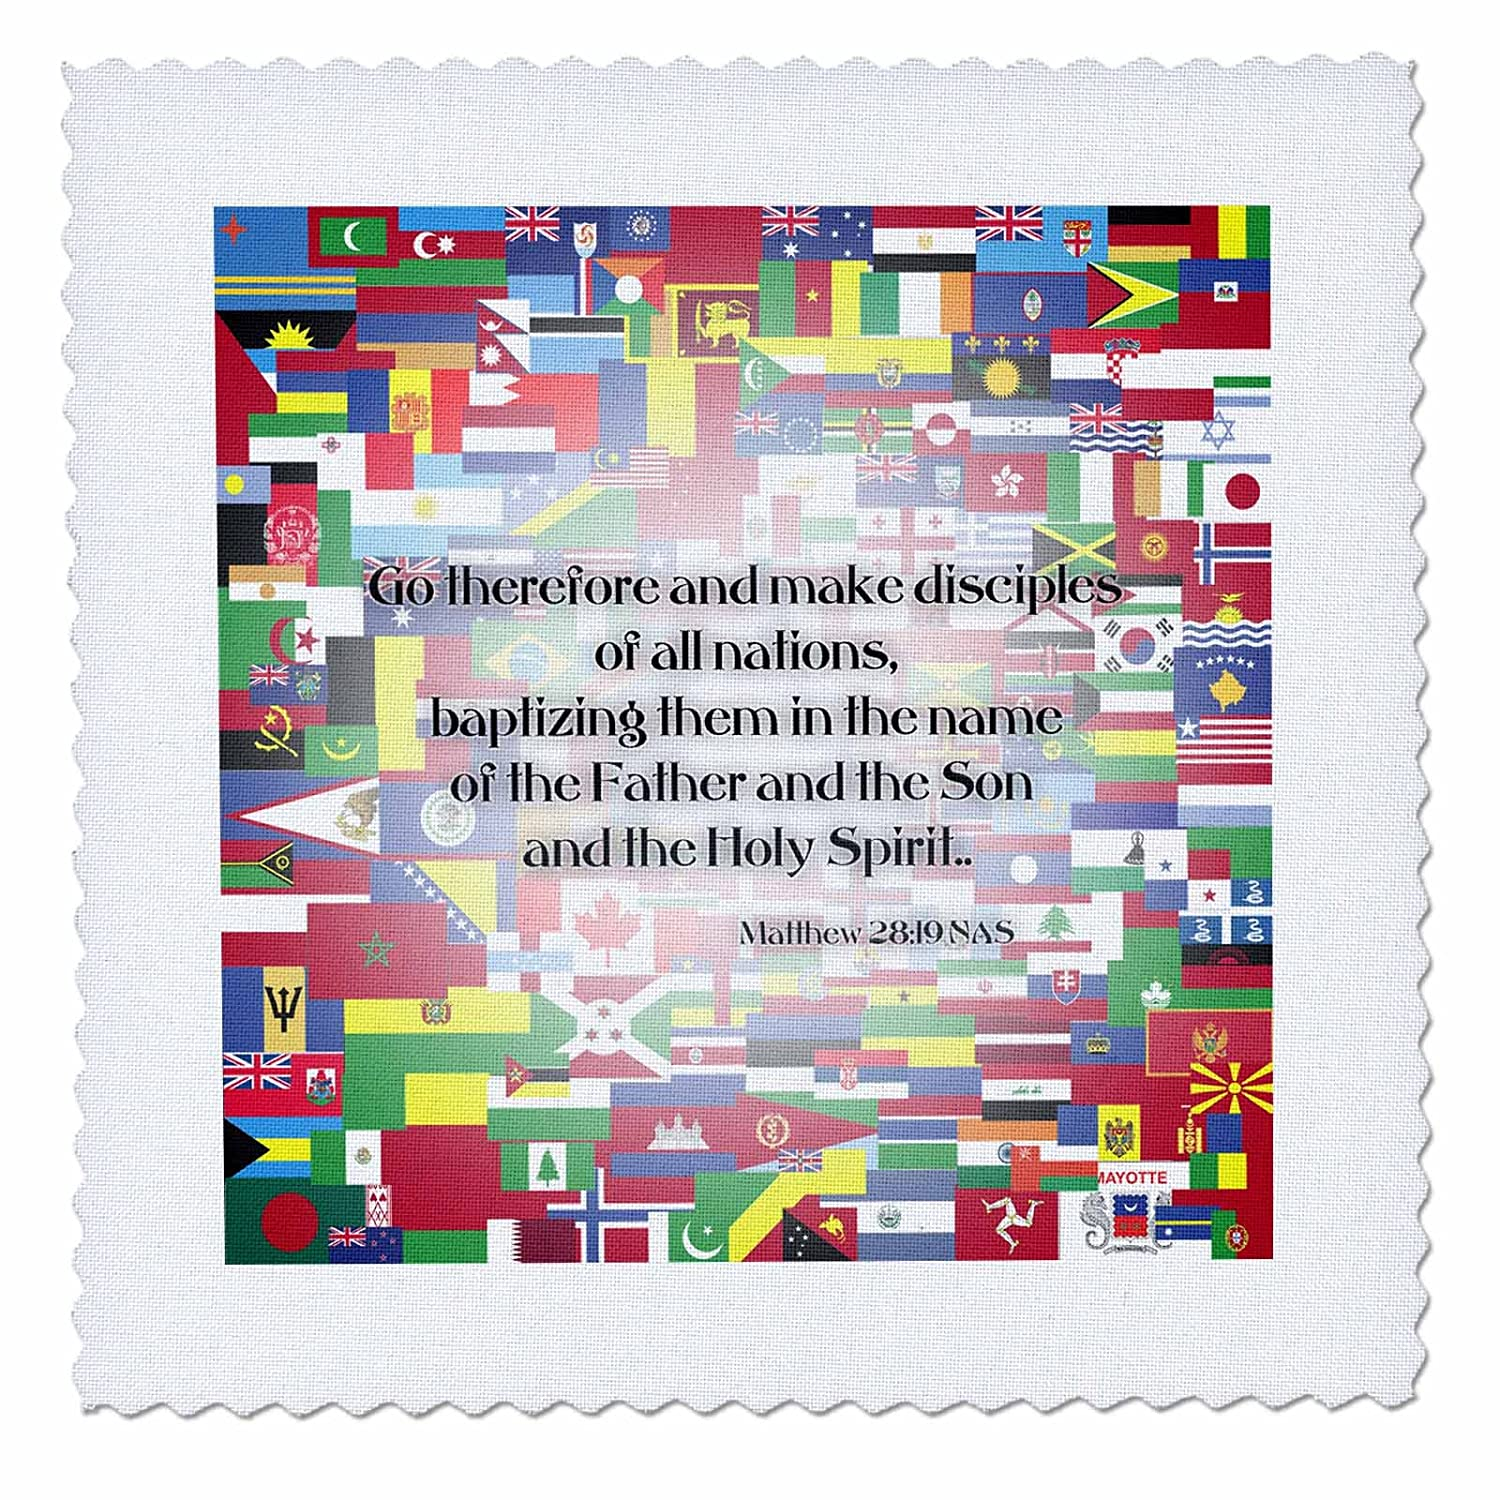 (30cm x 30cm quilt square) - 777images Designs Graphic Design Bible Verse - Matthew 28v19 Go forth and make disciples of all nations - Quilt Squares 12 by 12\  B00I84S2PU